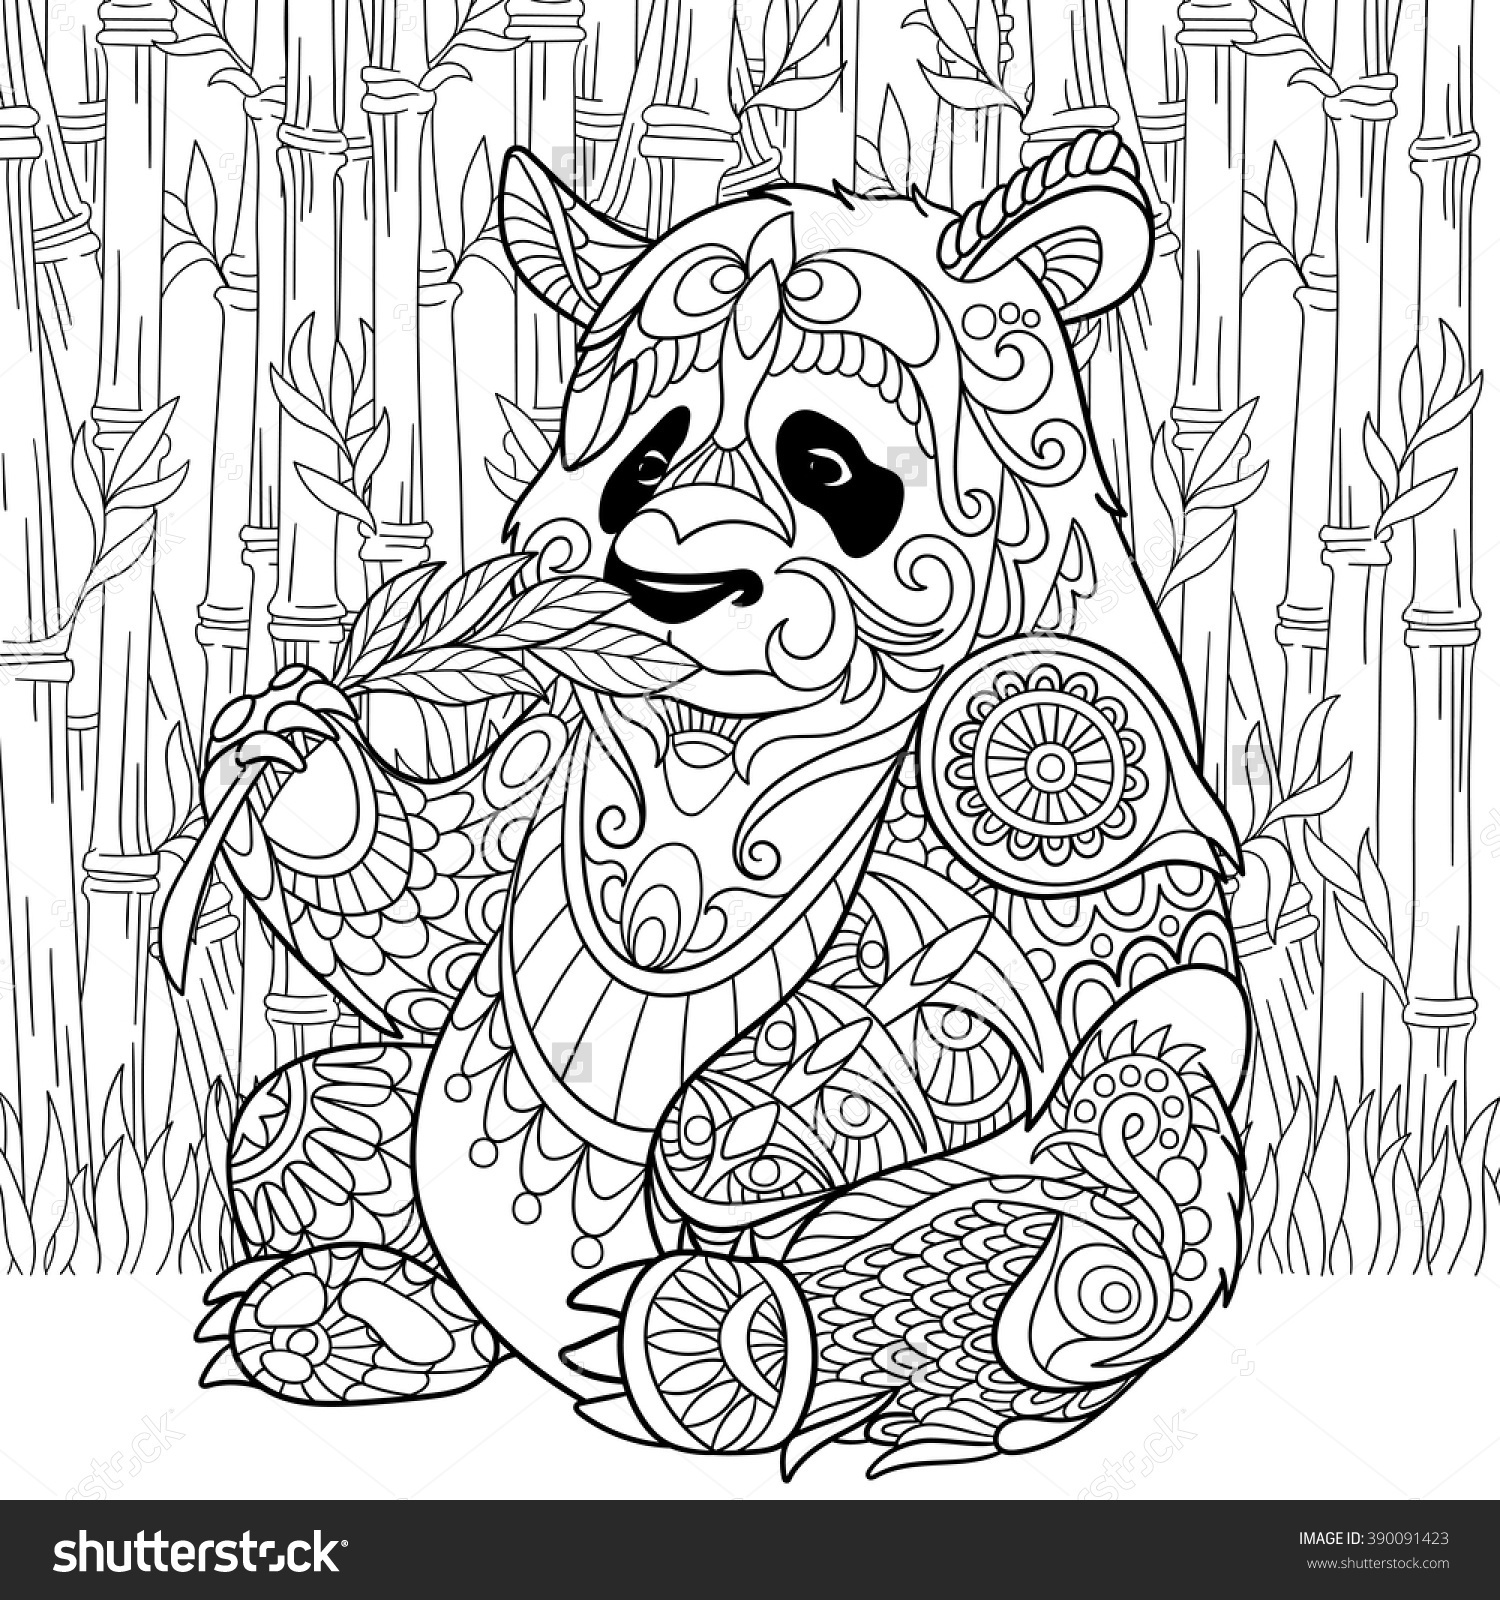 Cute Panda Drawing Pictures At Getdrawings Com Free For Personal